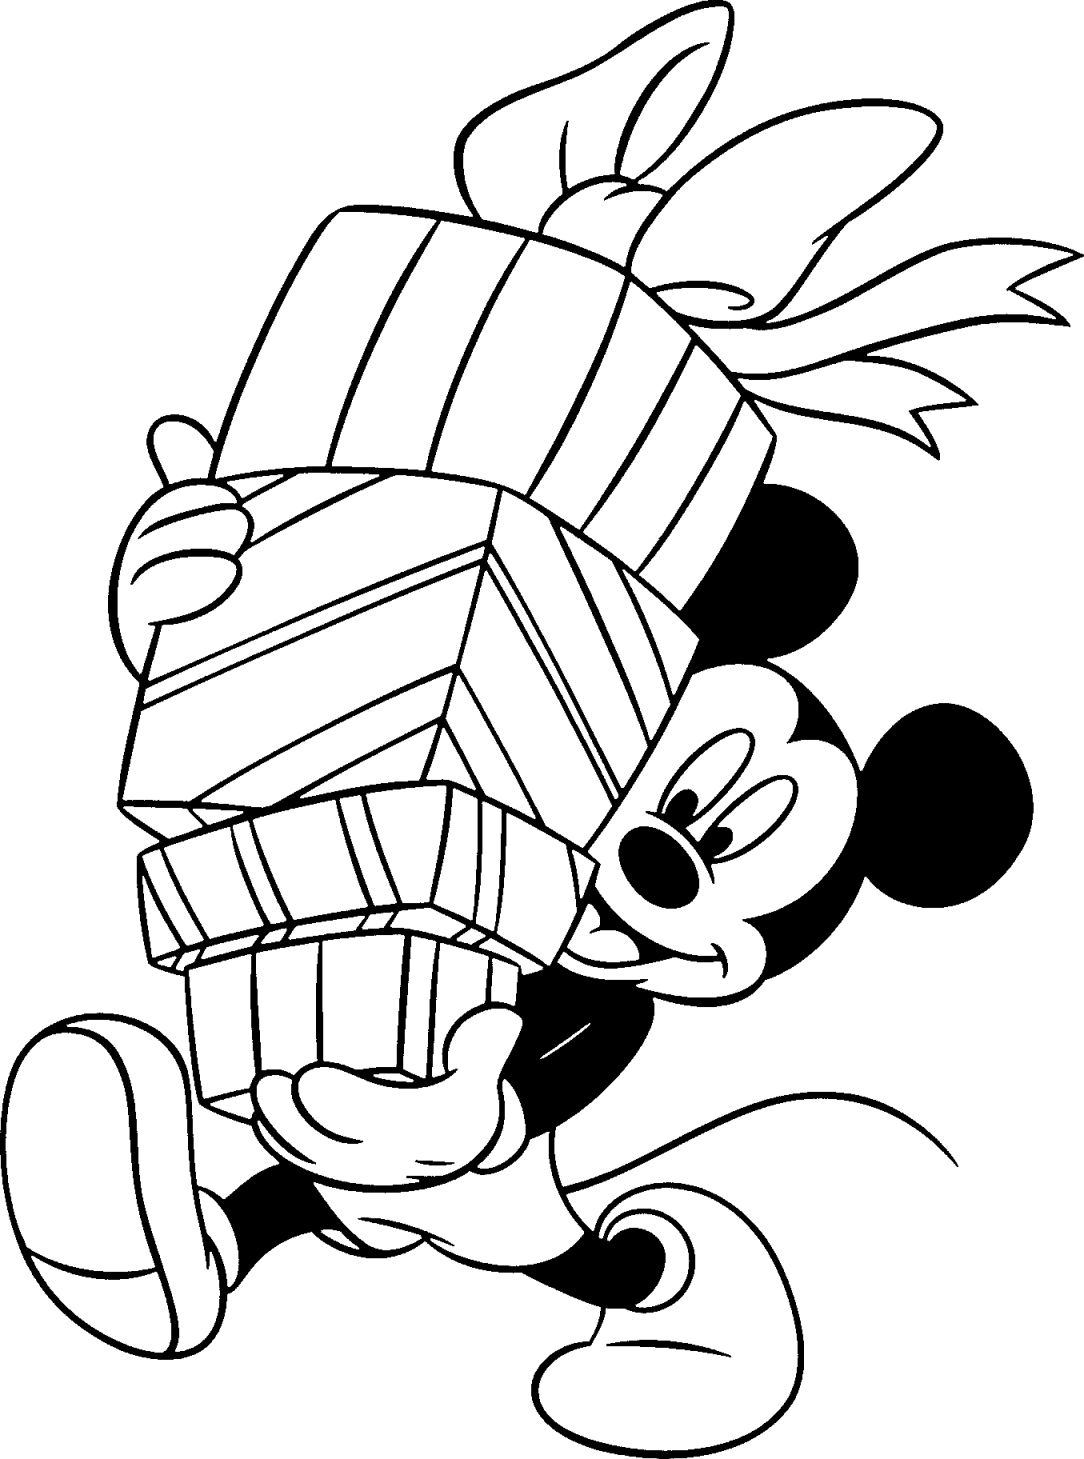 Coloring Pages Mickey Mouse Christmas : Disney coloring pages